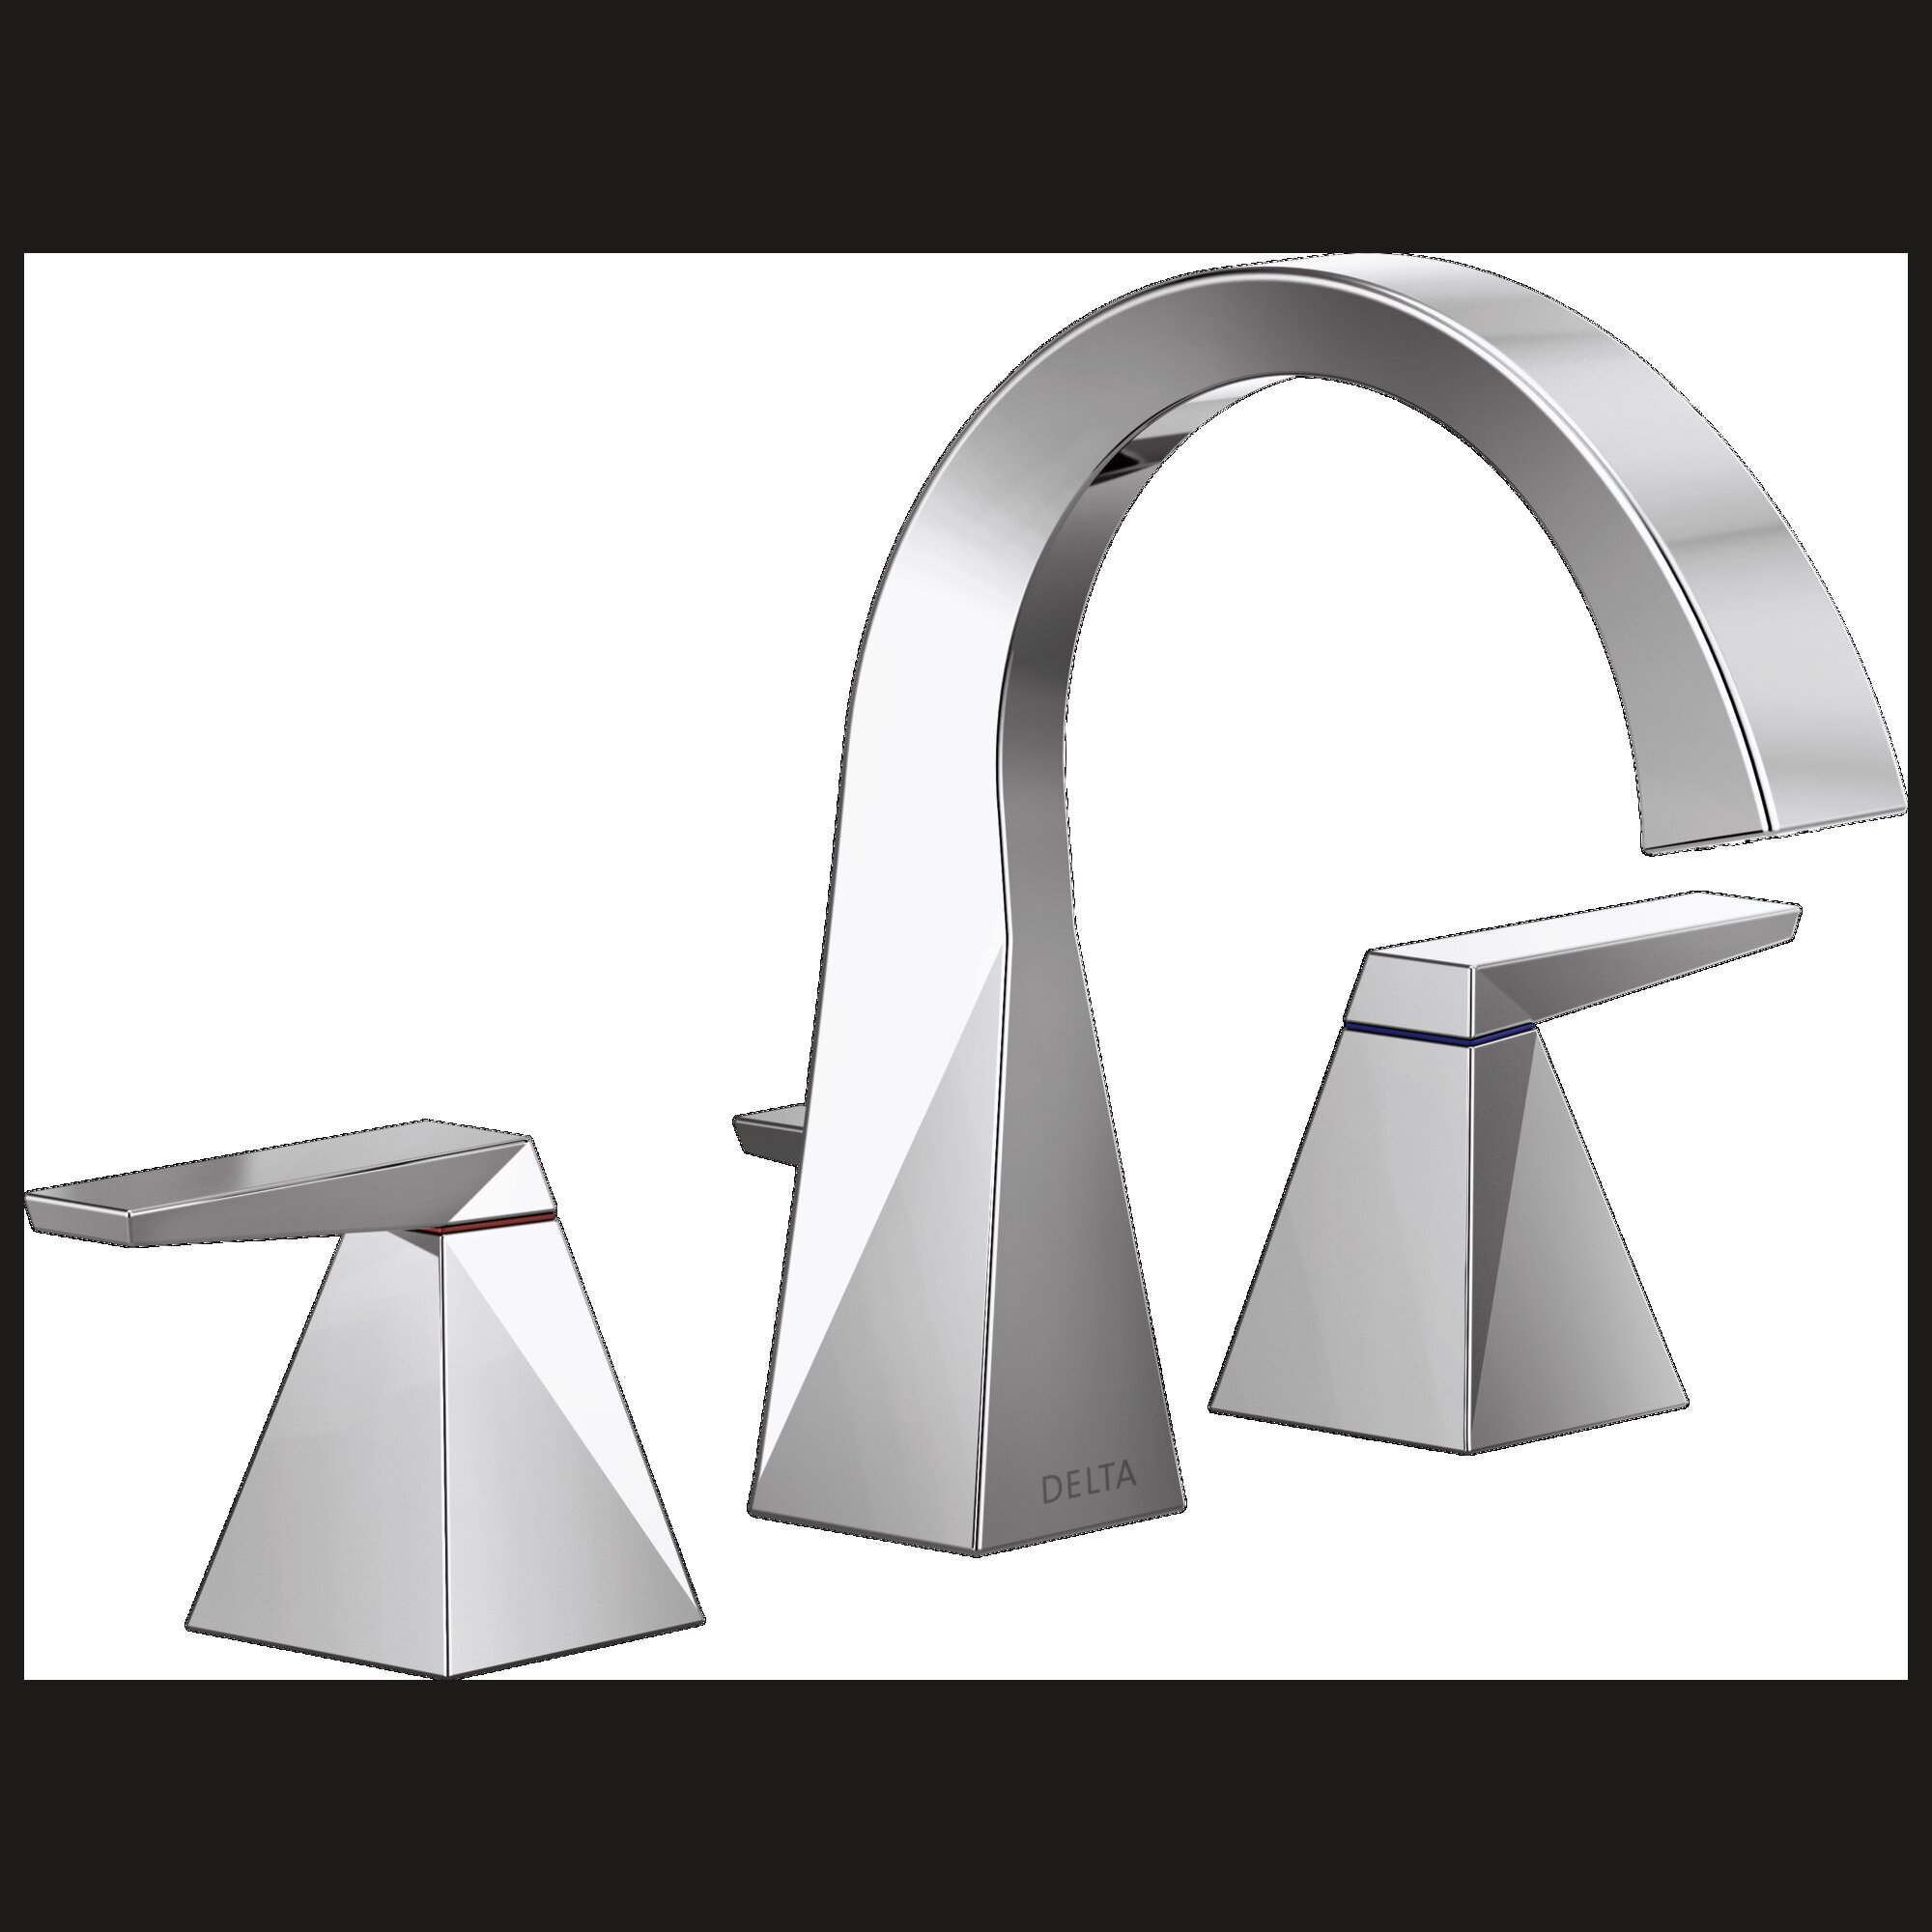 Delta Trillian Widespread Bathroom Faucet With Drain Assembly And Diamond Seal Technology Wayfair